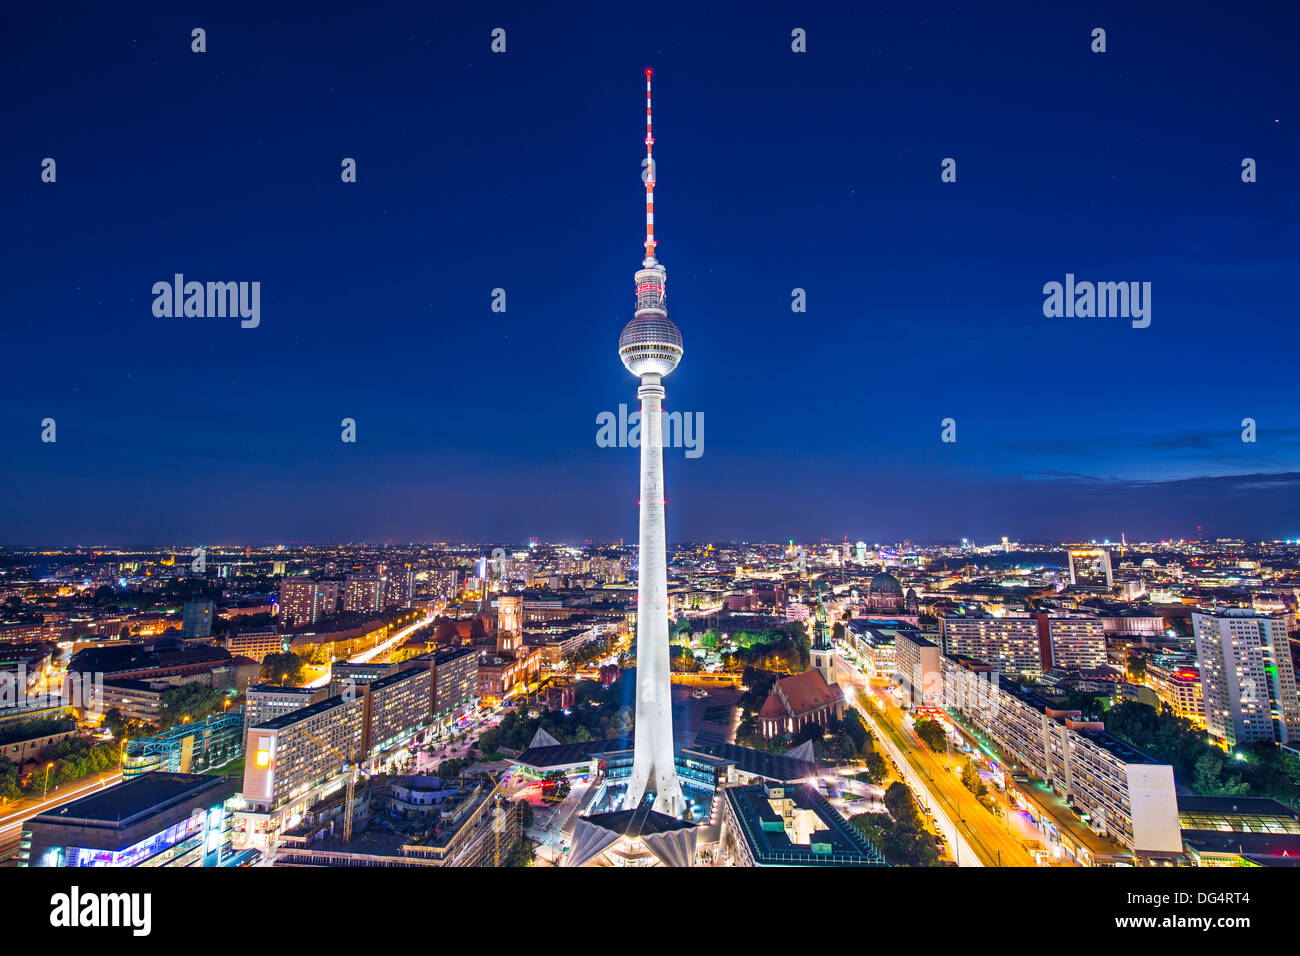 Berlin, Germany view of TV tower. - Stock Image